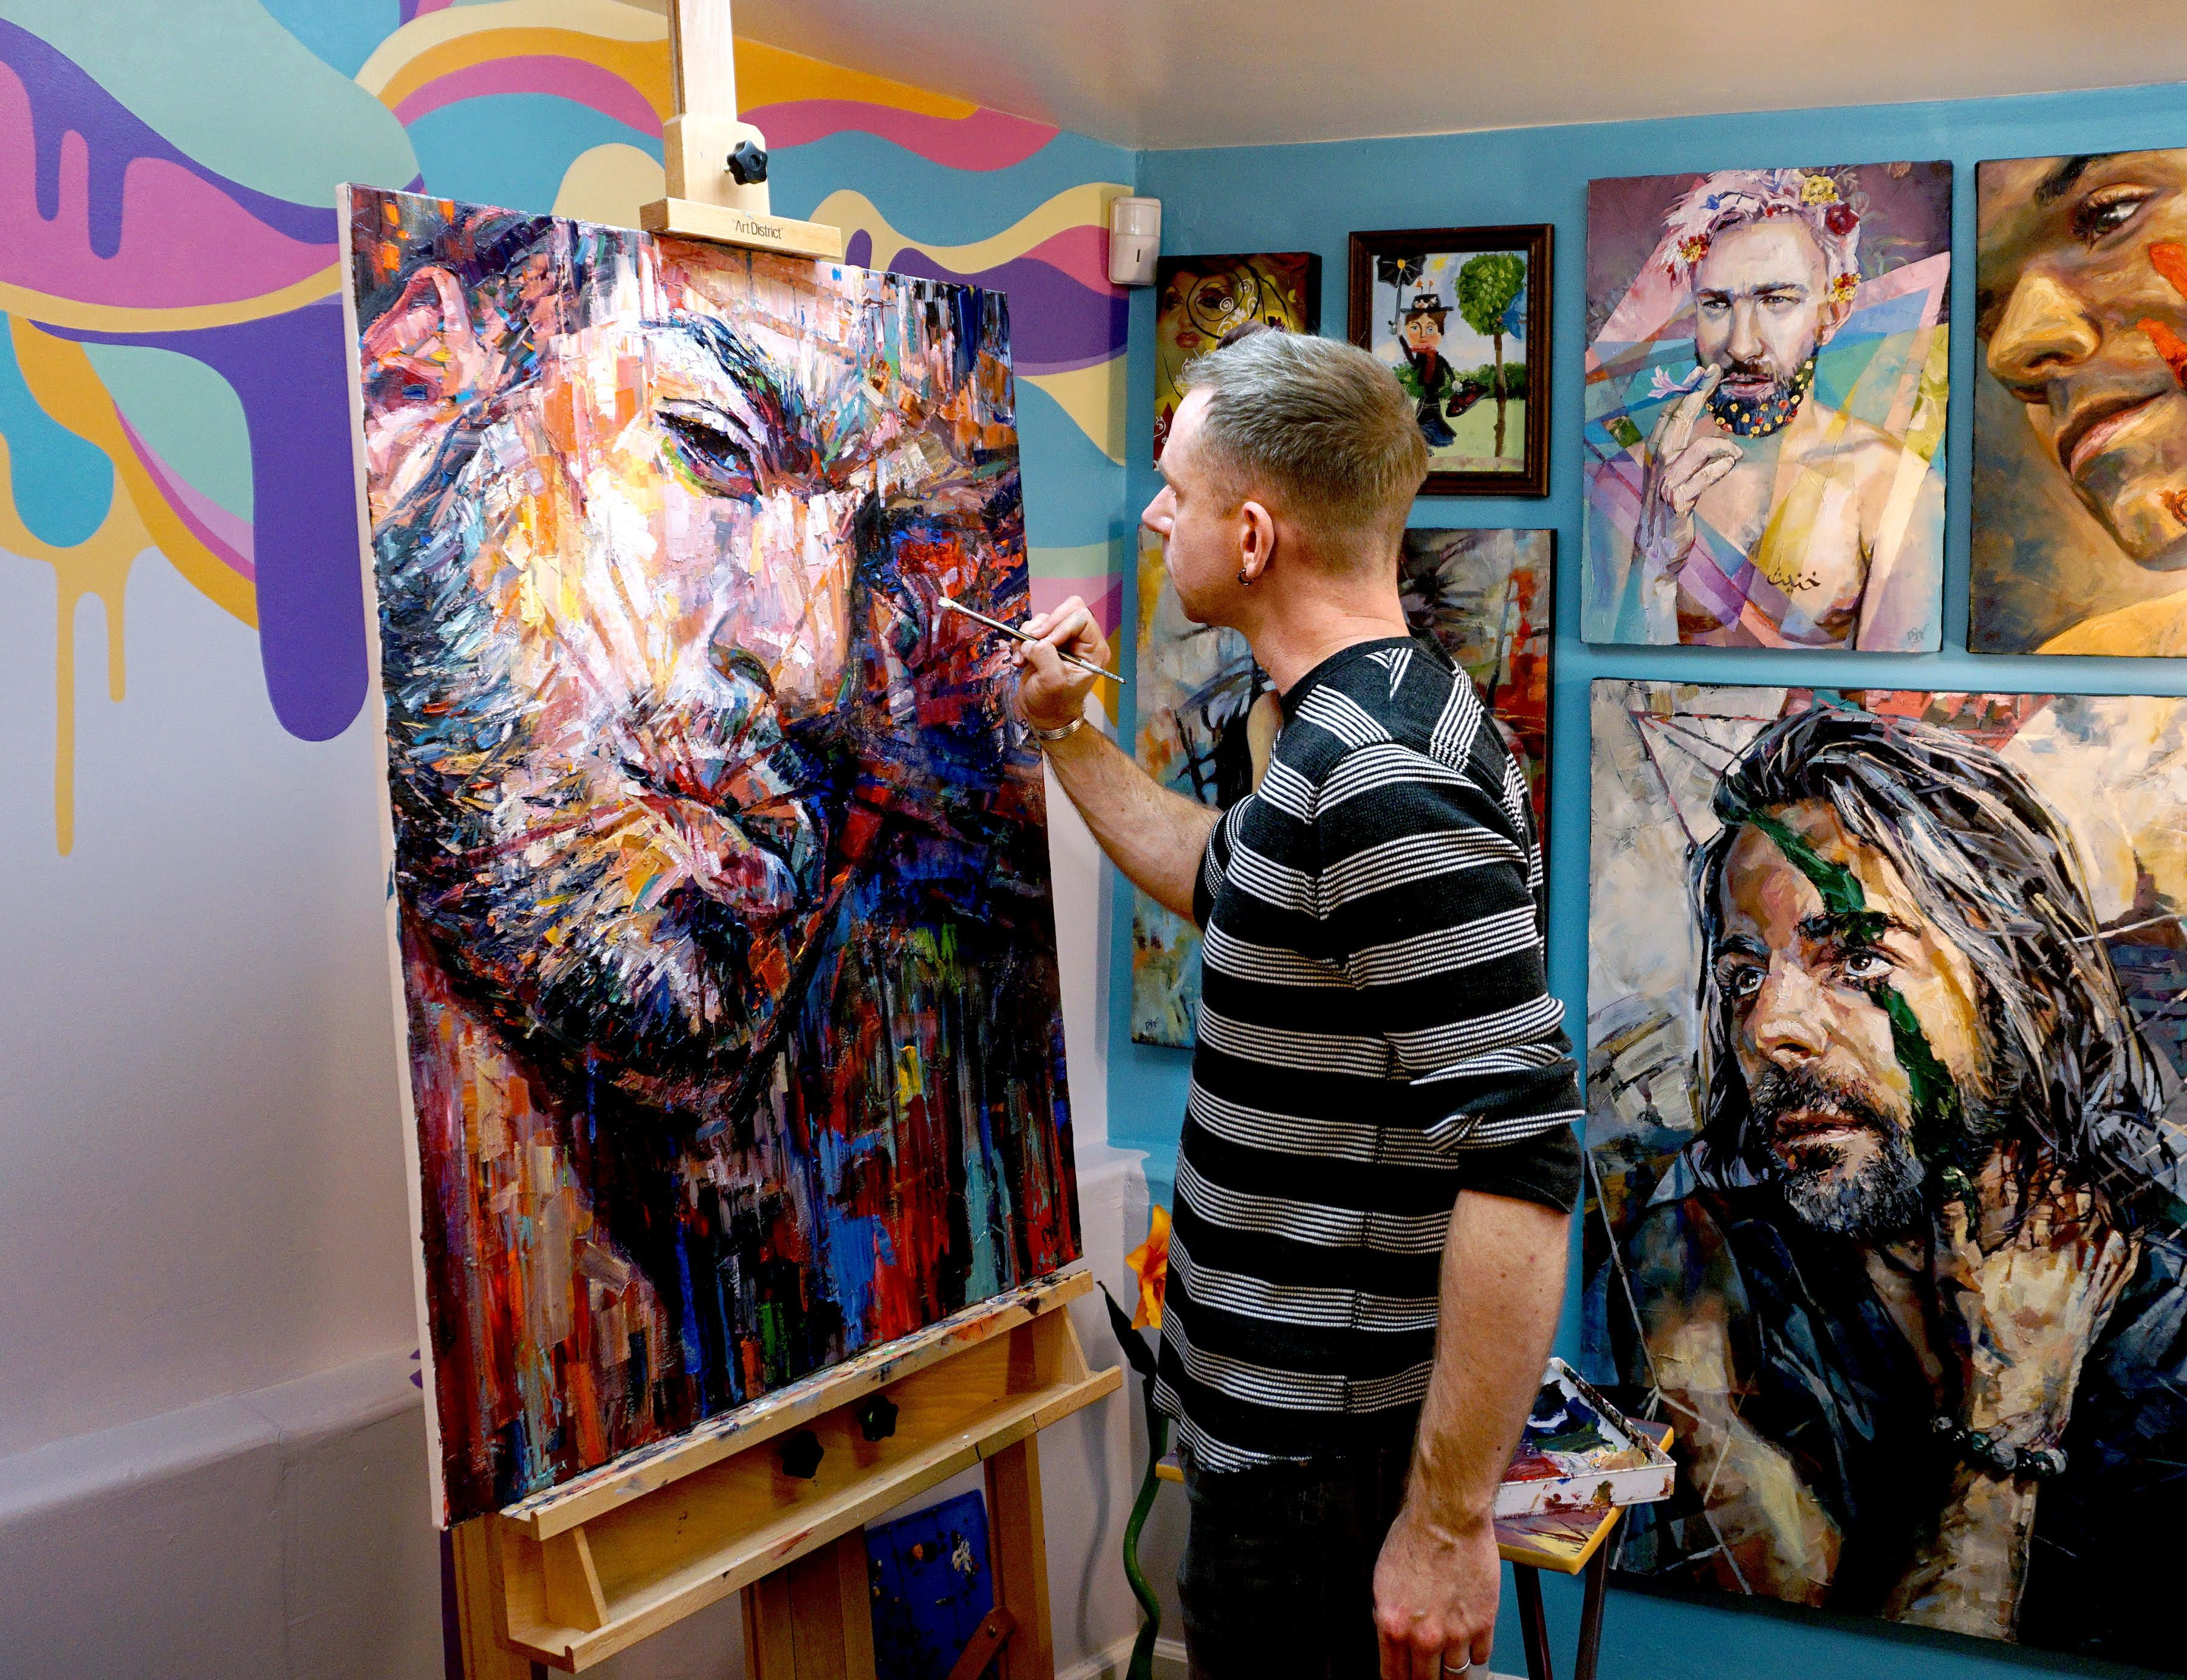 This Artist Is Tackling 'Toxic, Fragile' Masculinity In A Colorful